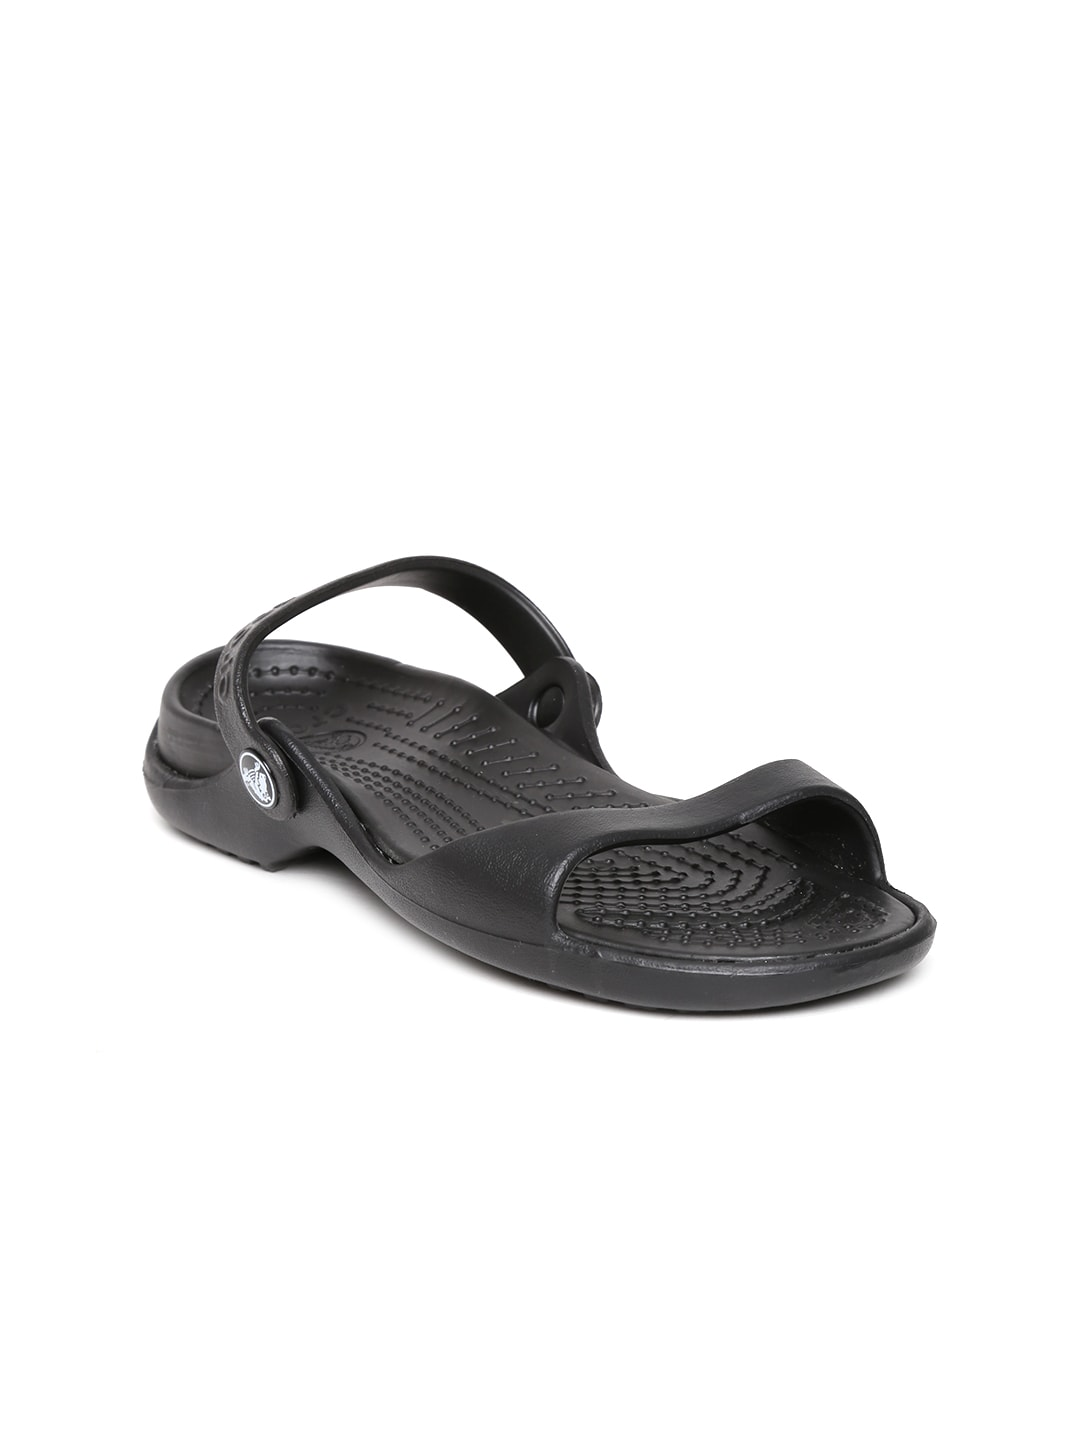 Crocs Women Black Sandals